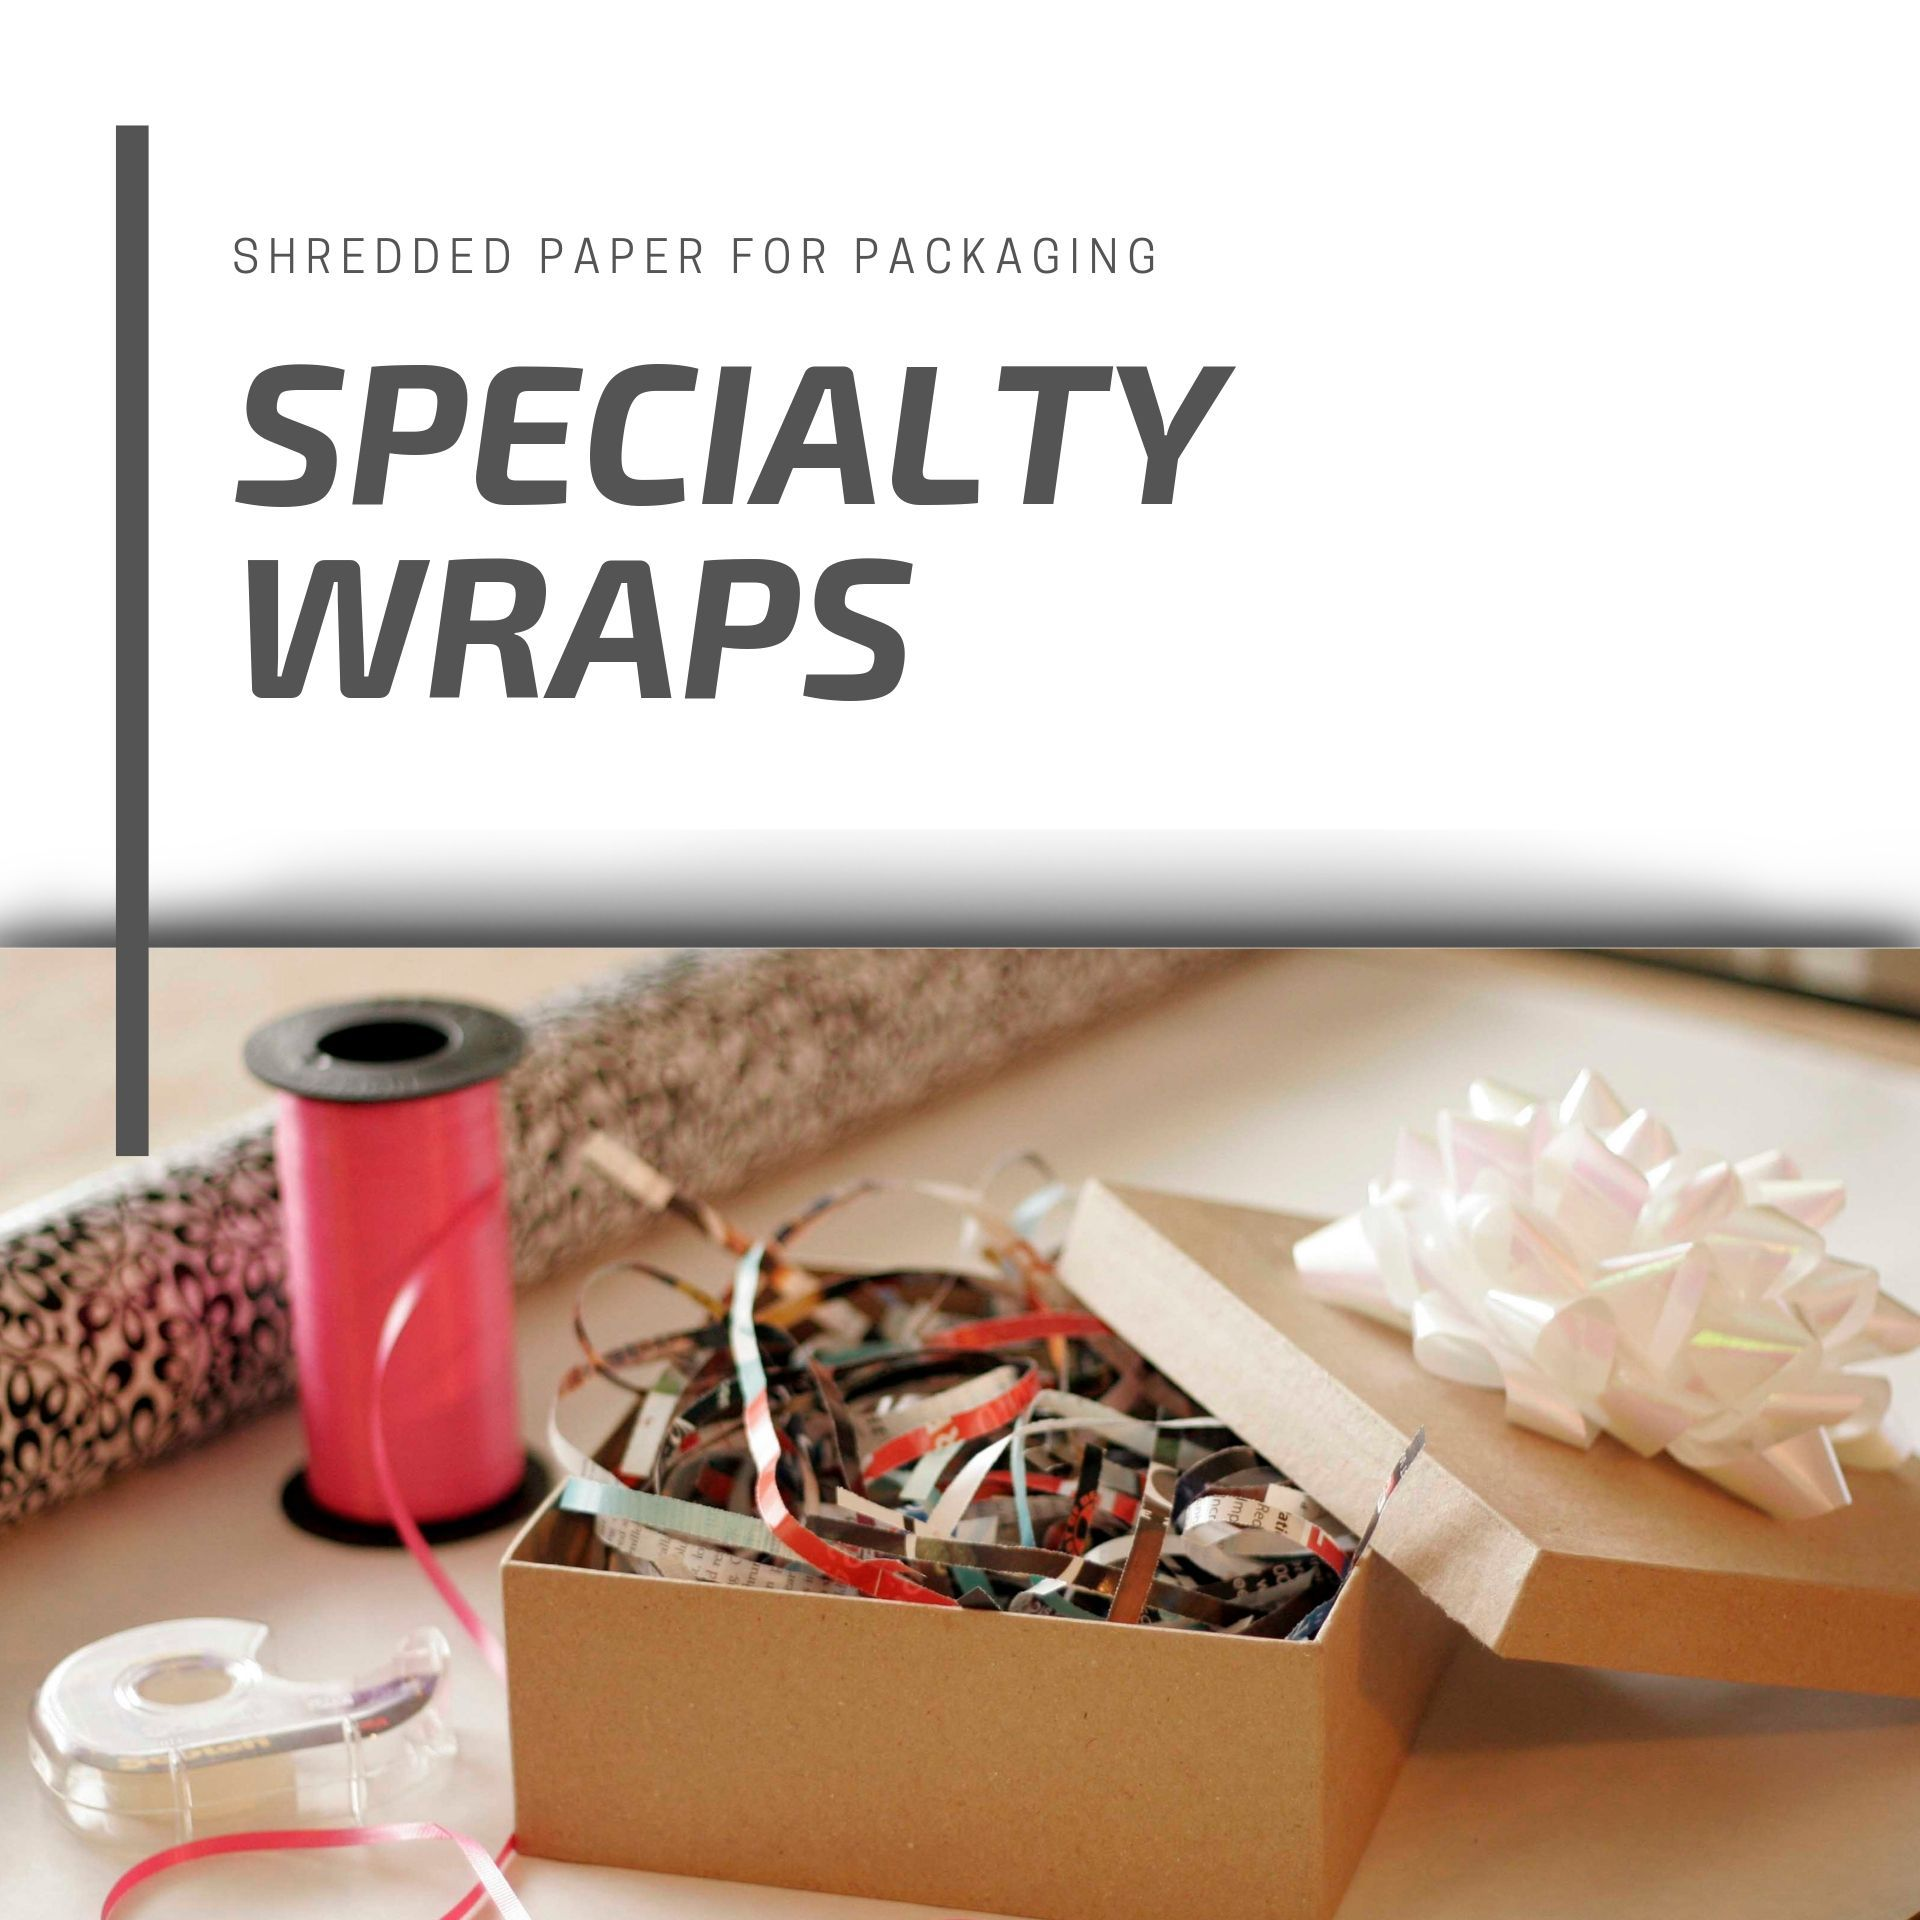 Shredded papers for packaging specialty wraps